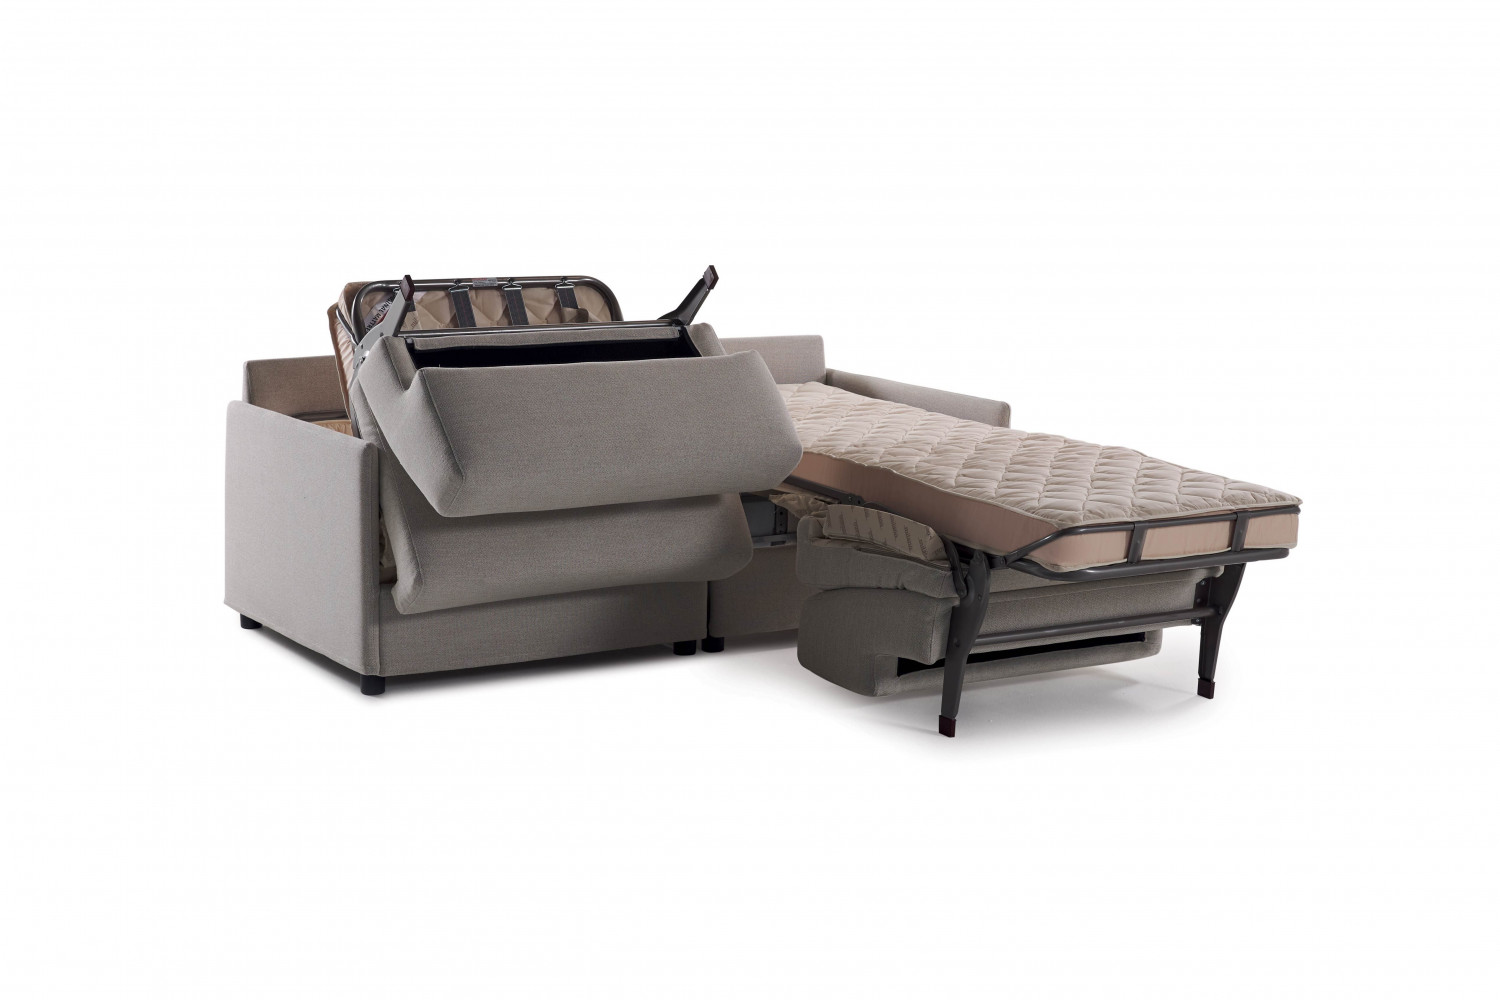 Double Sofa Bed With Two Single Beds